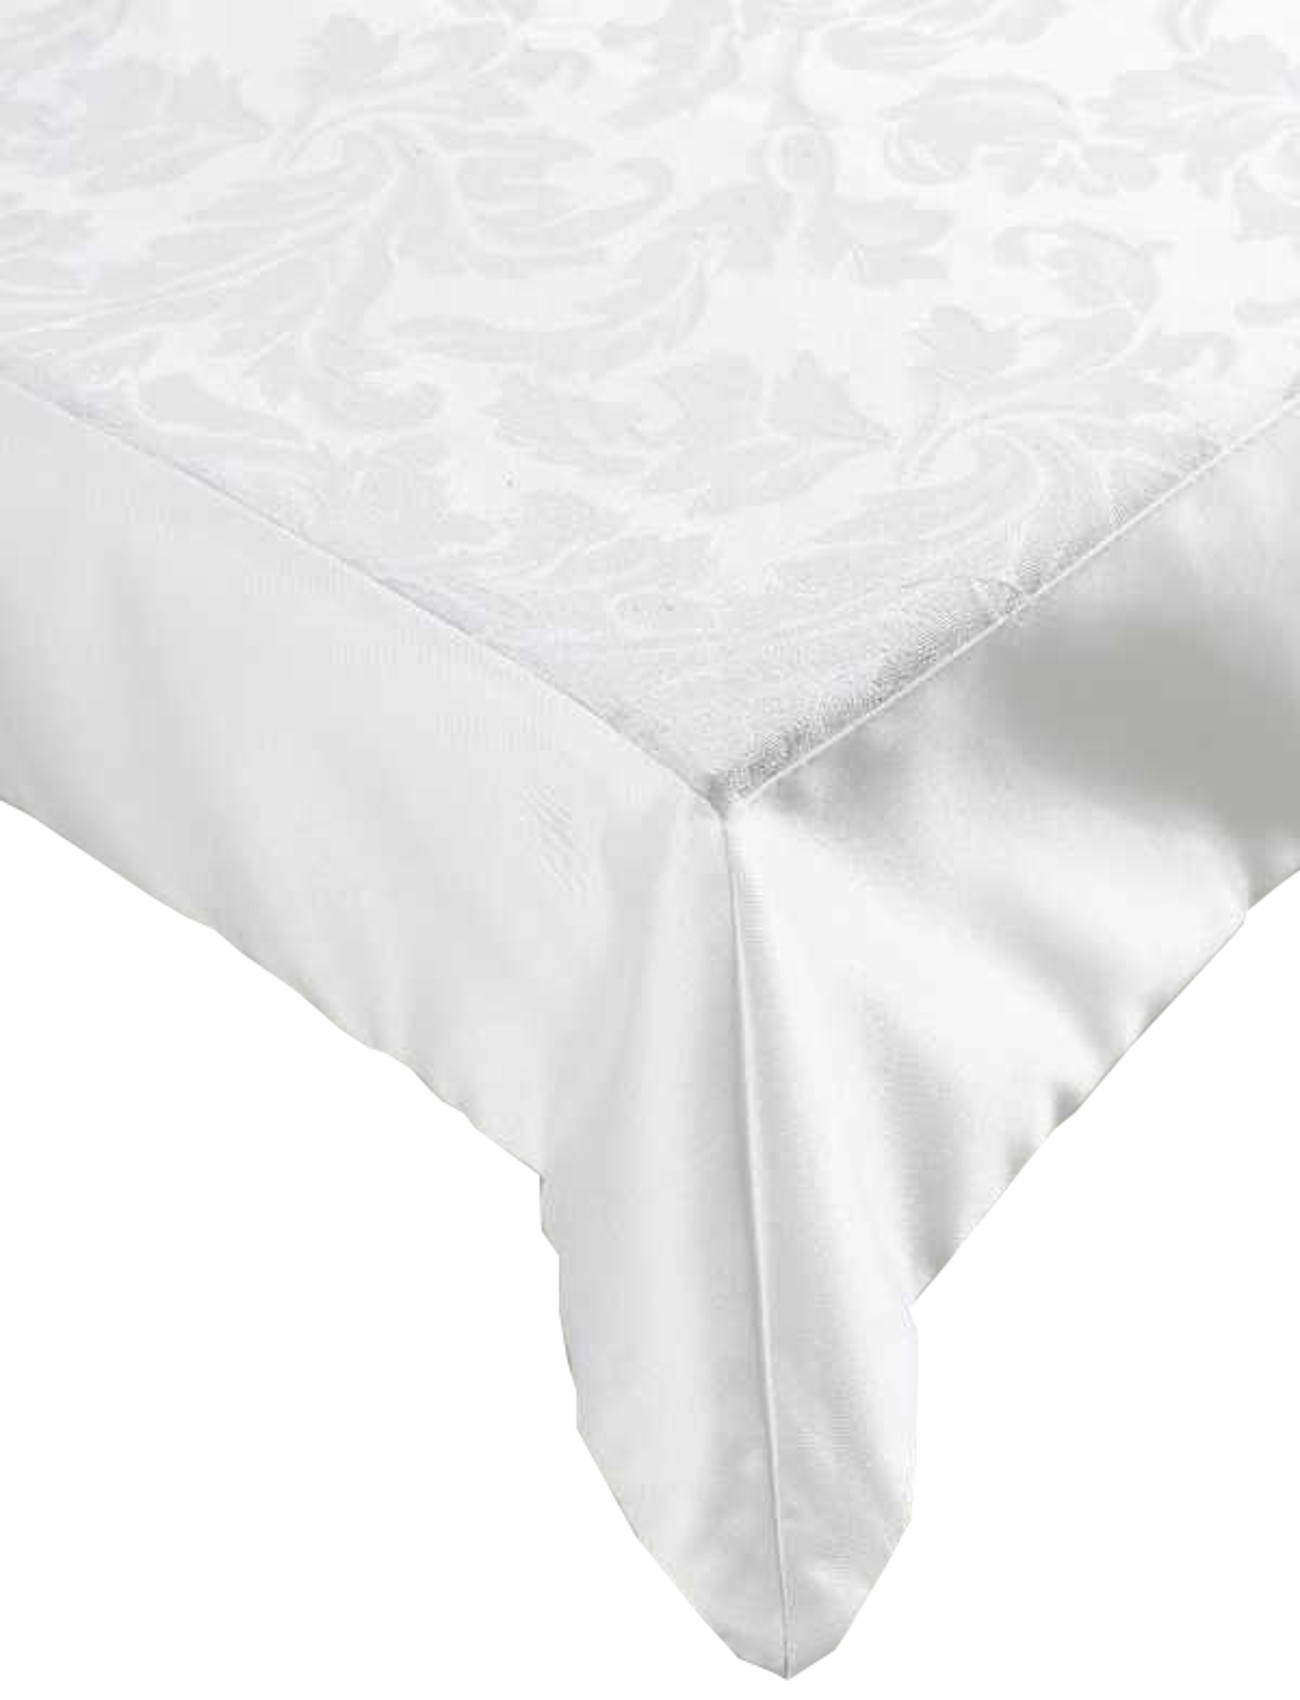 Jacquard Damask Tablecloth Cotton Mix Banqueting Hotel  : sarah damask tablecloth extra large banquet home hotel quality table linen white from www.ebay.co.uk size 1300 x 1700 jpeg 120kB